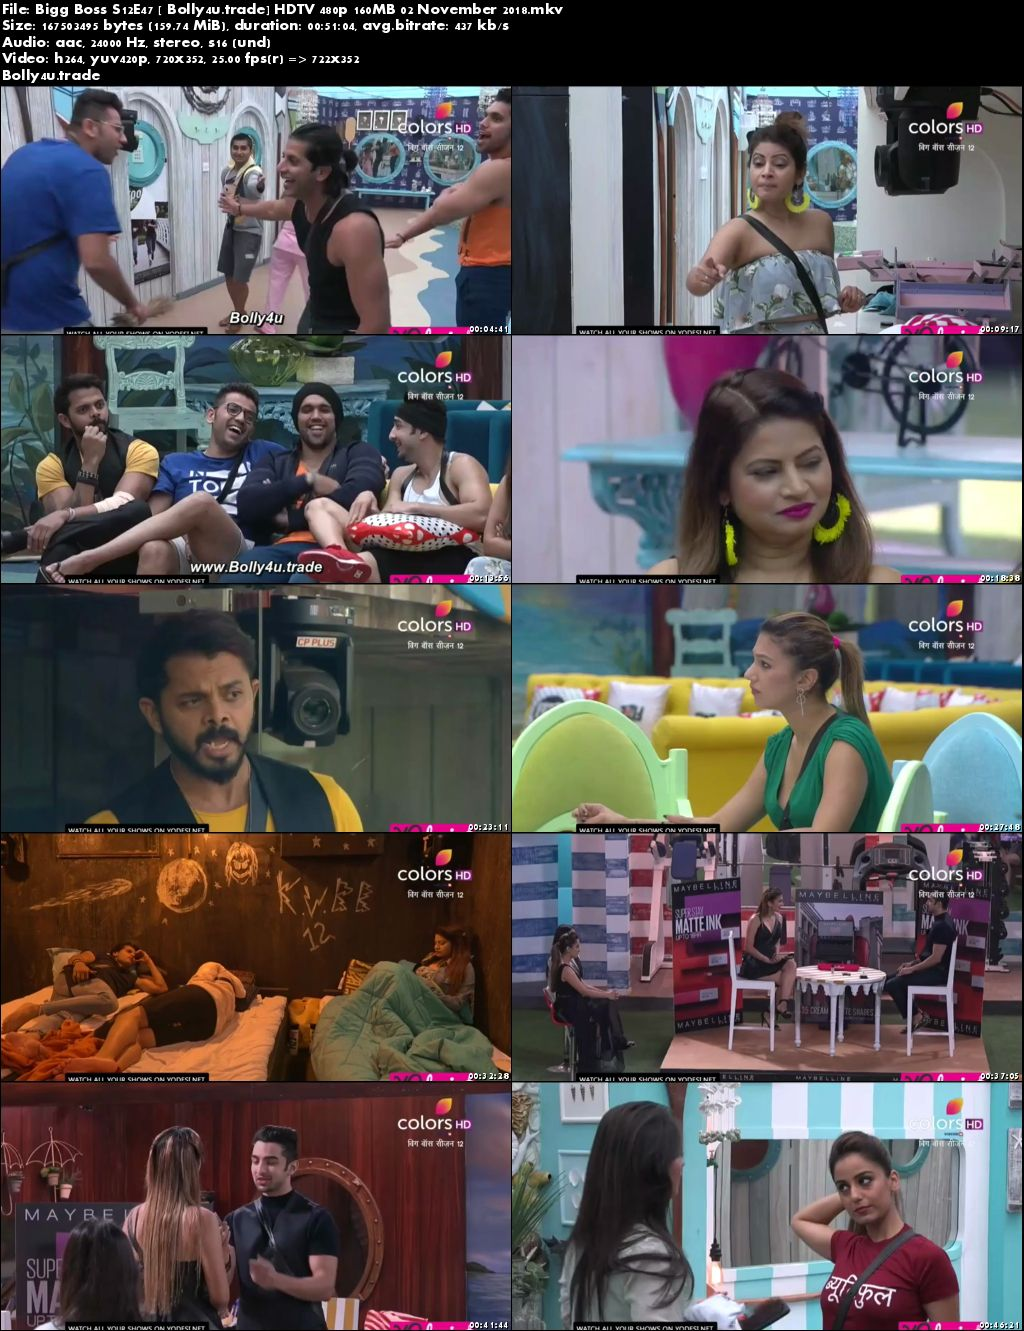 Bigg Boss S12E47 HDTV 480p 160MB 02 November 2018 Download